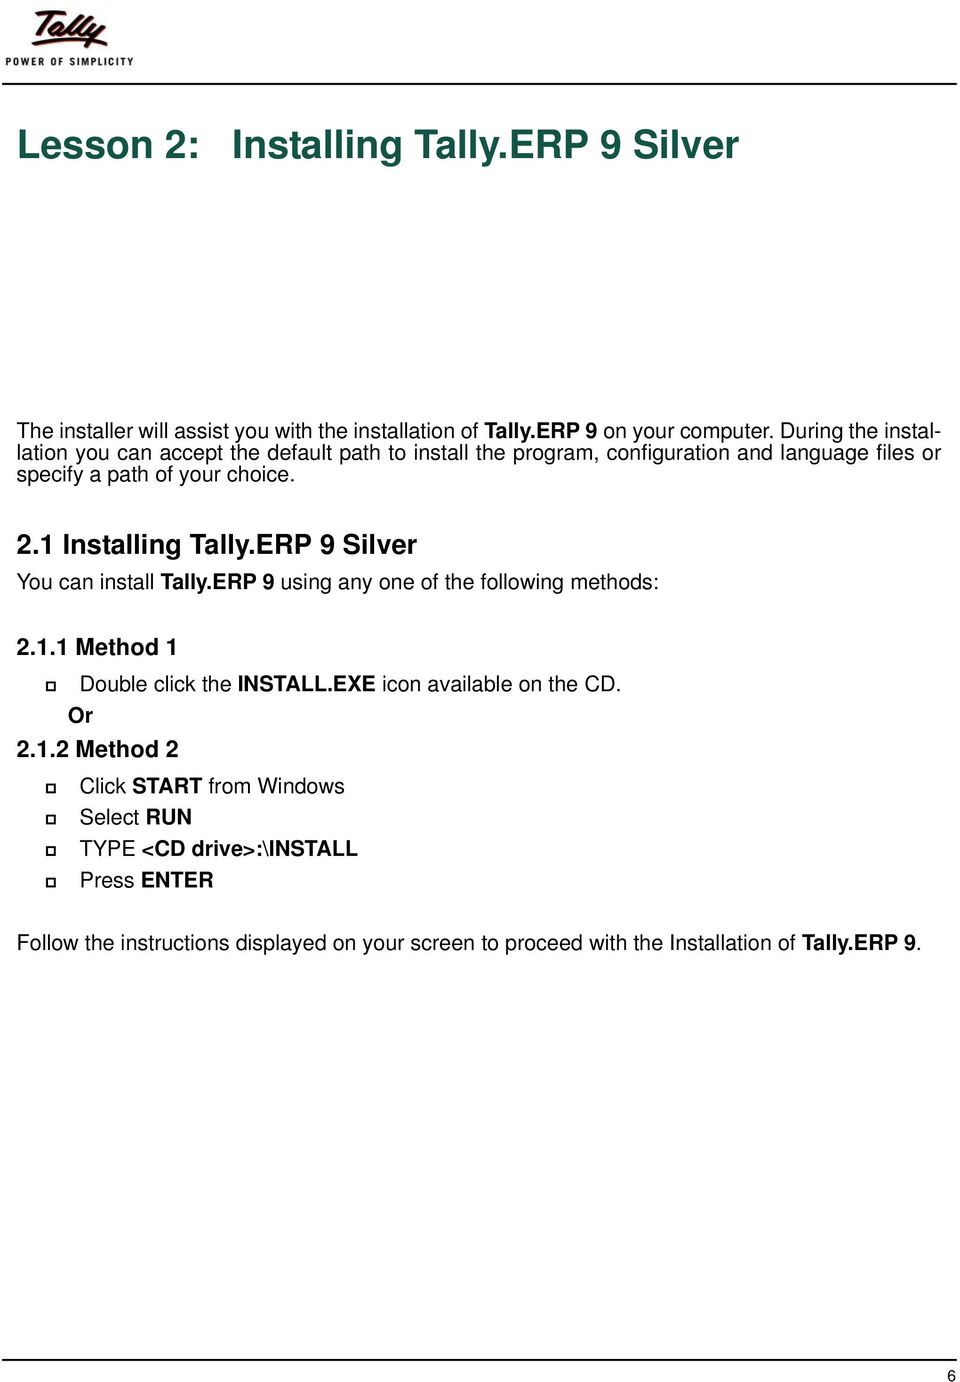 1 Installing Tally.ERP 9 Silver You can install Tally.ERP 9 using any one of the following methods: 2.1.1 Method 1 Double click the INSTALL.